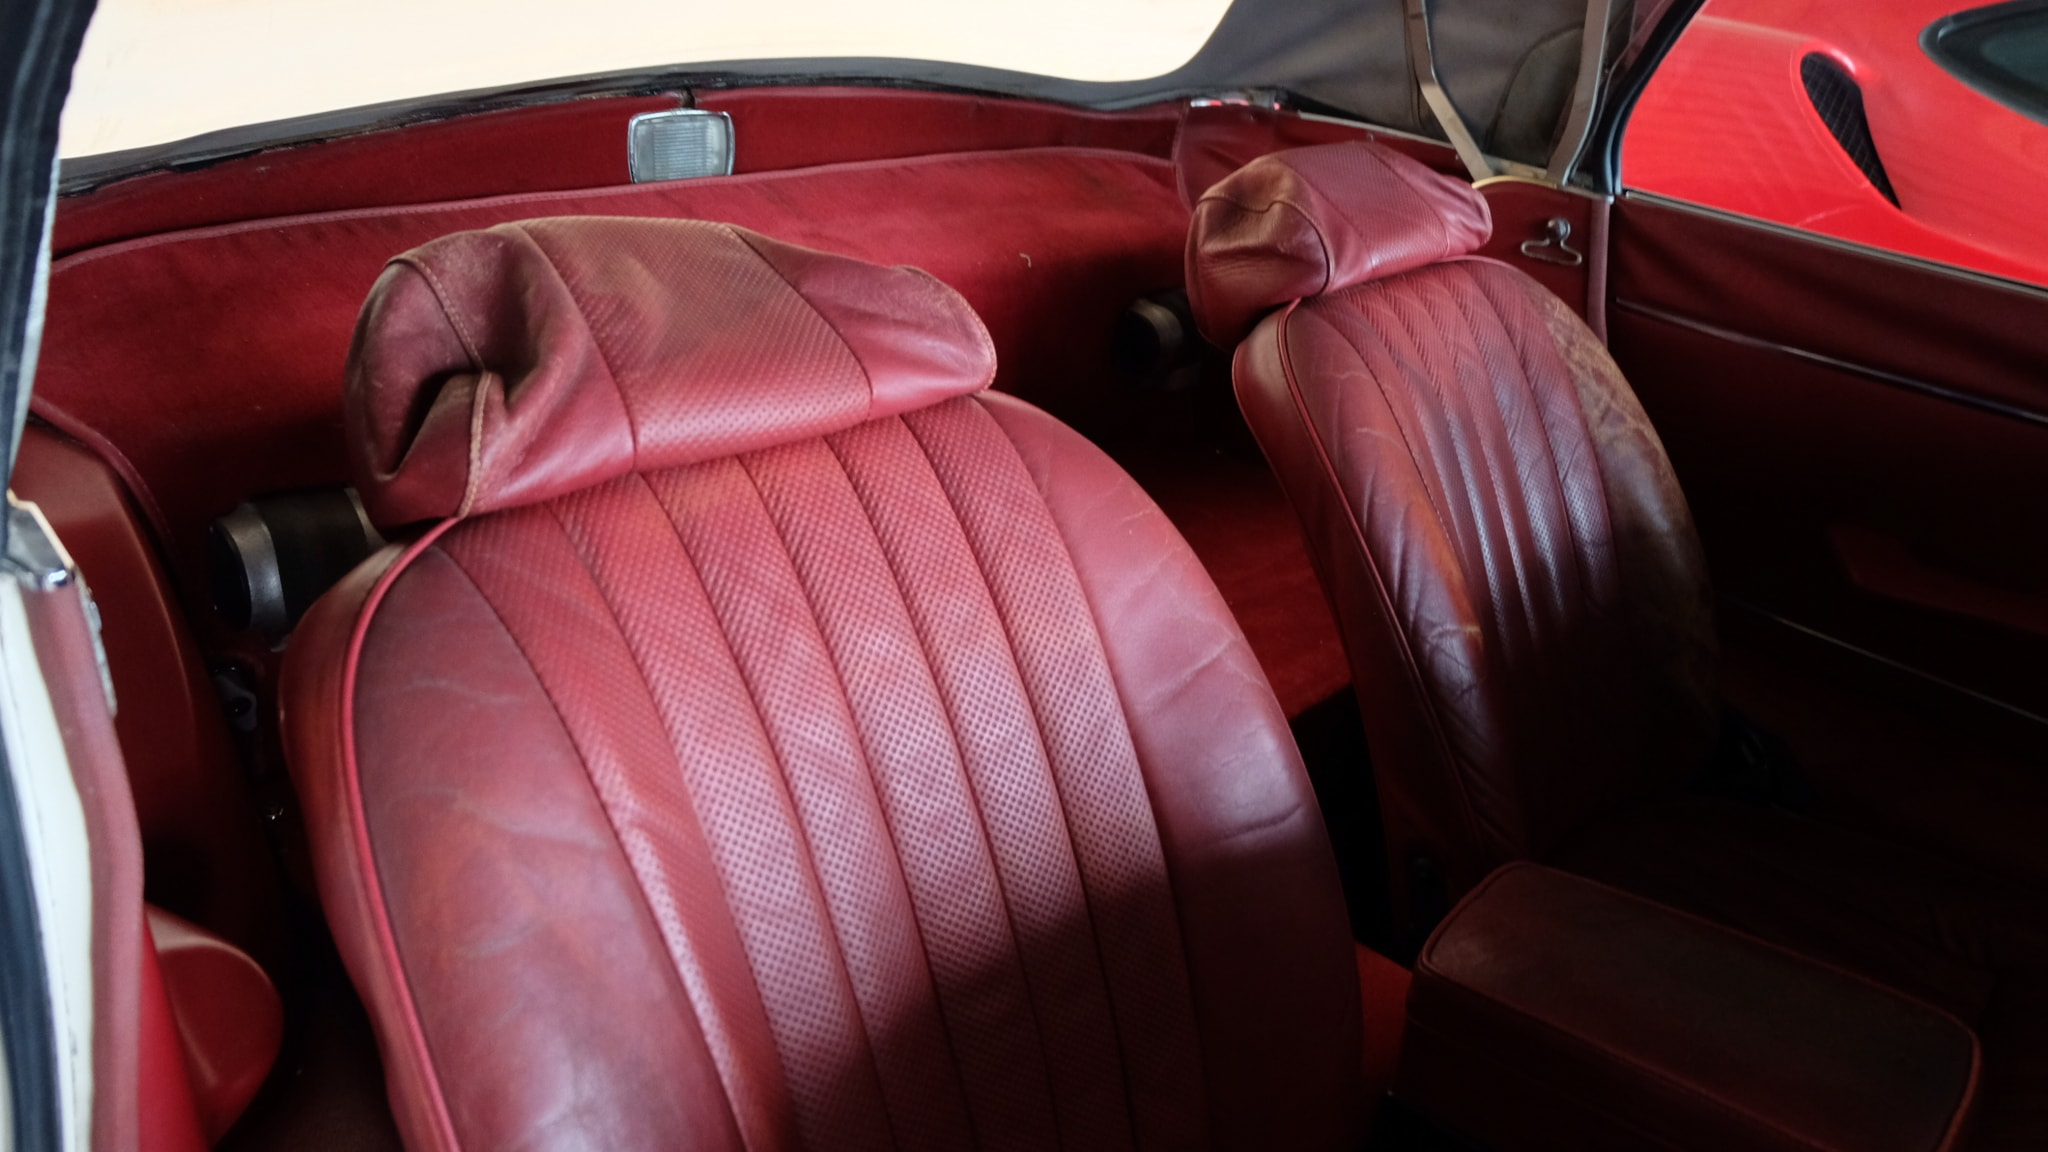 1972 Jaguar XKE Convertible Seats.jpg